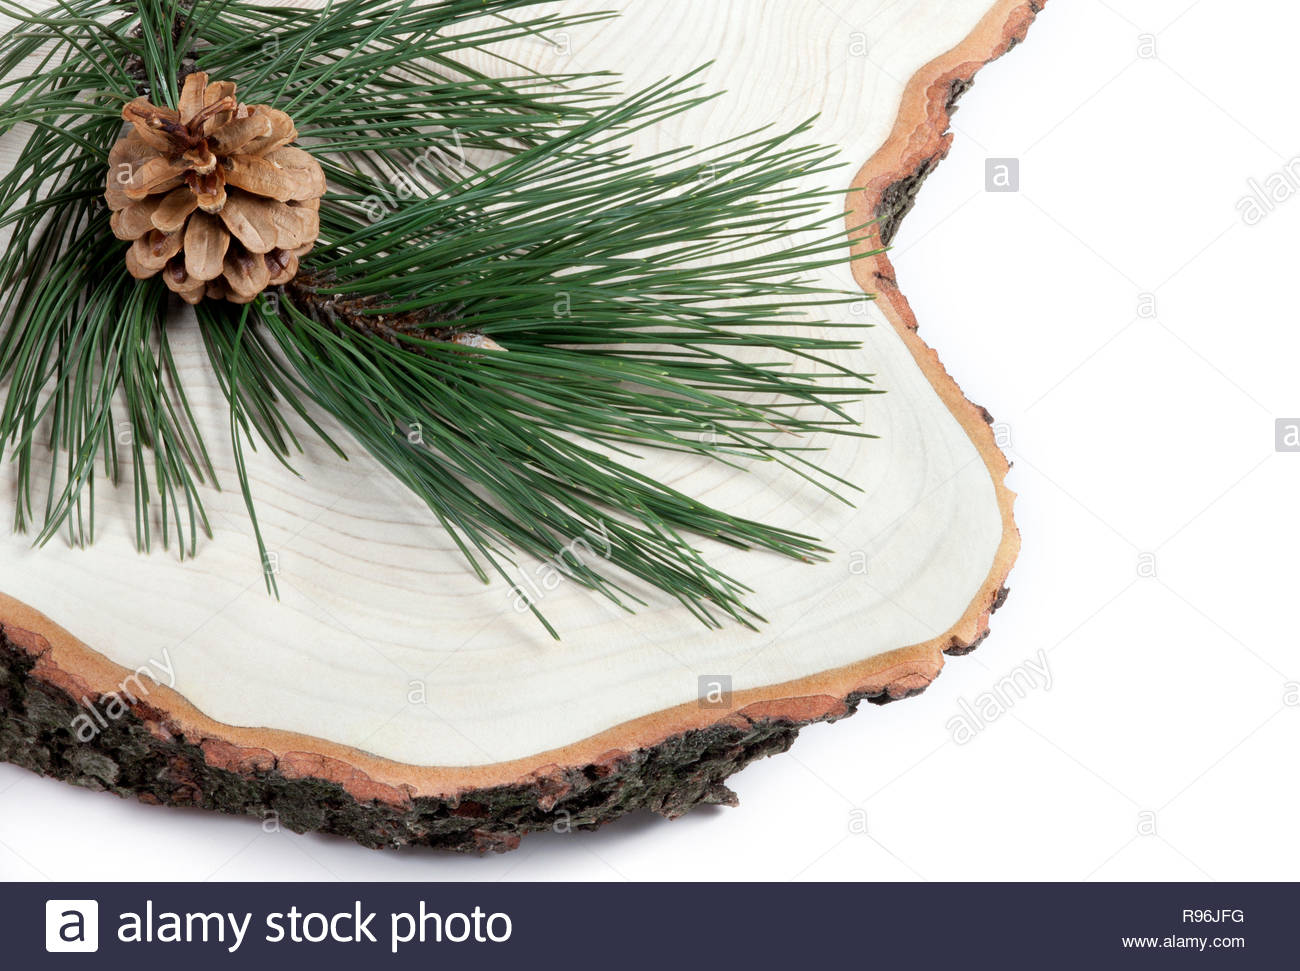 Christmas nature background. Branch of pine with cone on freshly cut of tree. Stock Photo